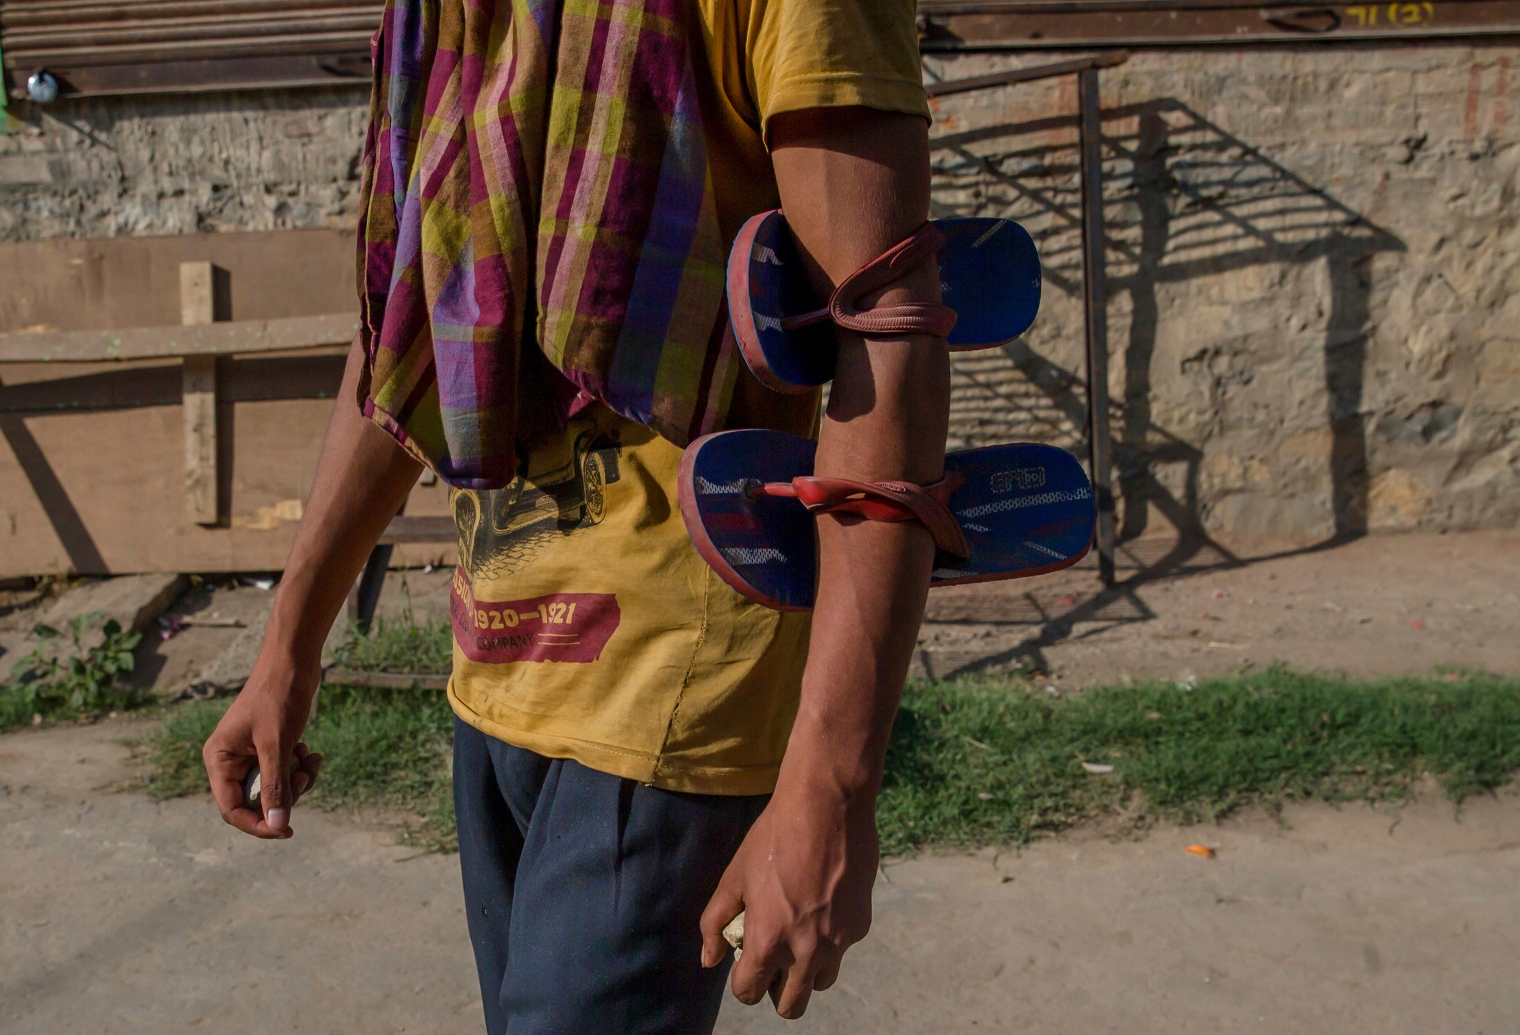 A villager has his slippers tied to his arm as he holds stones before throwing them at Indian policemen to protest during the funeral procession of a civilian Tanveer Ahmed Wani, in Beerwah about 25 miles (40 km.) west of Srinagar on July 21, 2017. The Indian army fired at worshippers outside a mosque in disputed Kashmir on Friday, killing one man and injuring another, after some threw rocks, police and residents said.